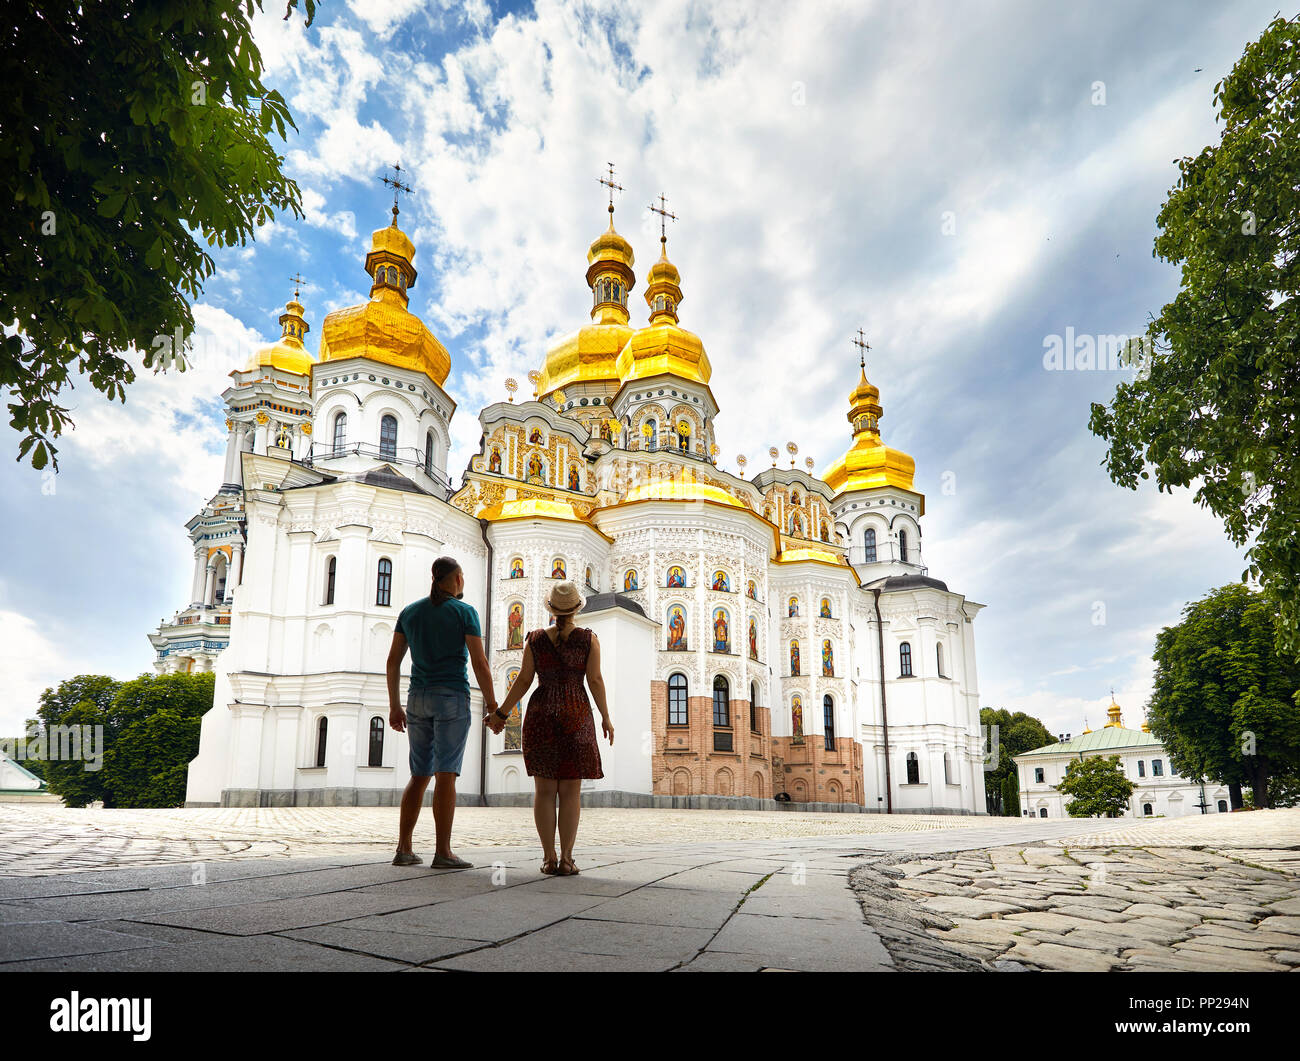 Young tourist couple in silhouette looking at Church with golden domes at Kiev Pechersk Lavra Christian complex. Old historical architecture in Kiev,  - Stock Image